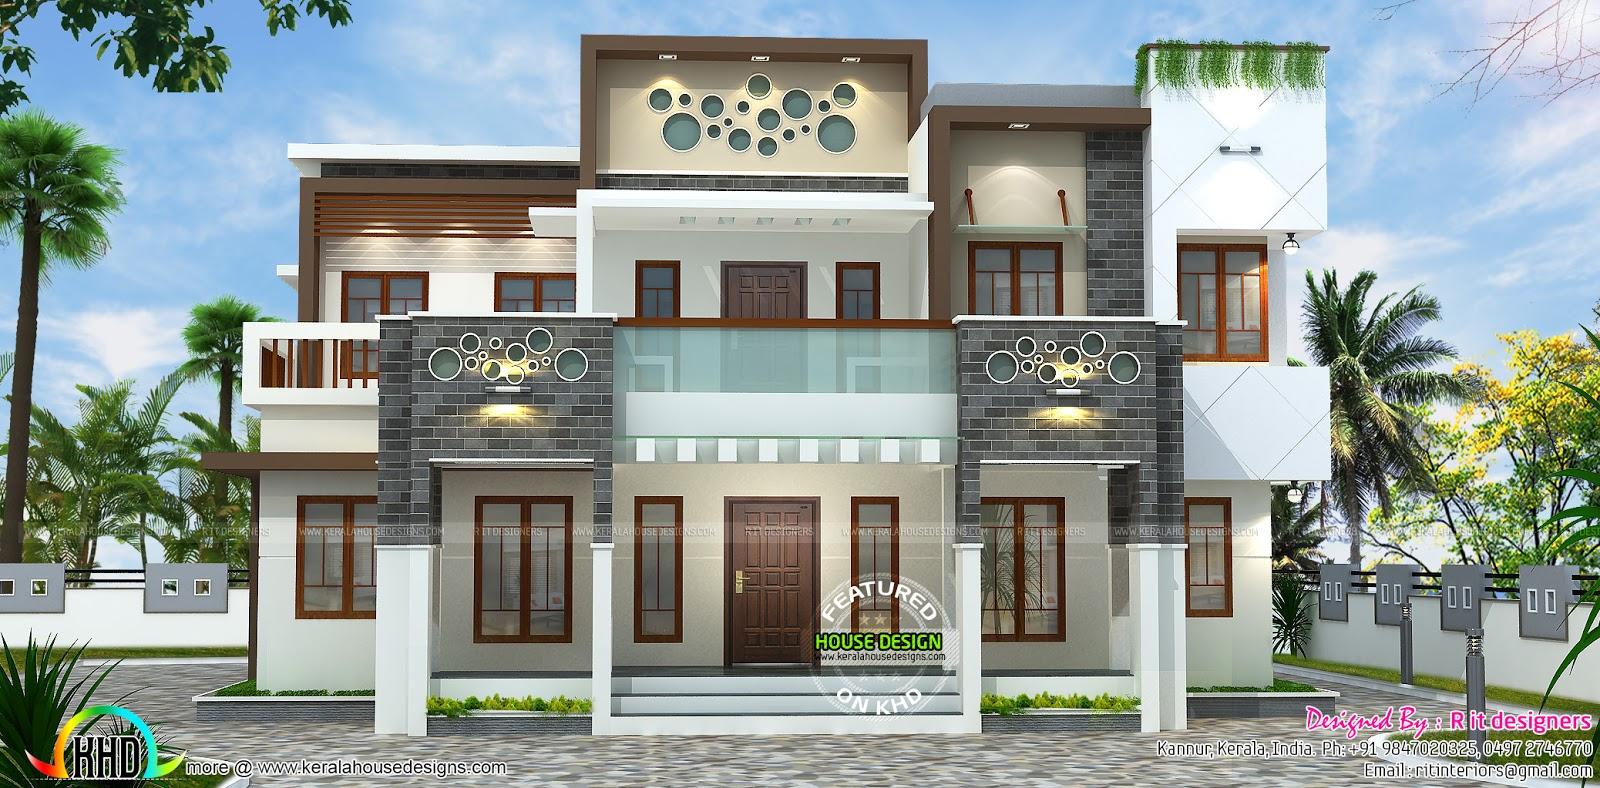 Architectural home plans elevation plans for homes